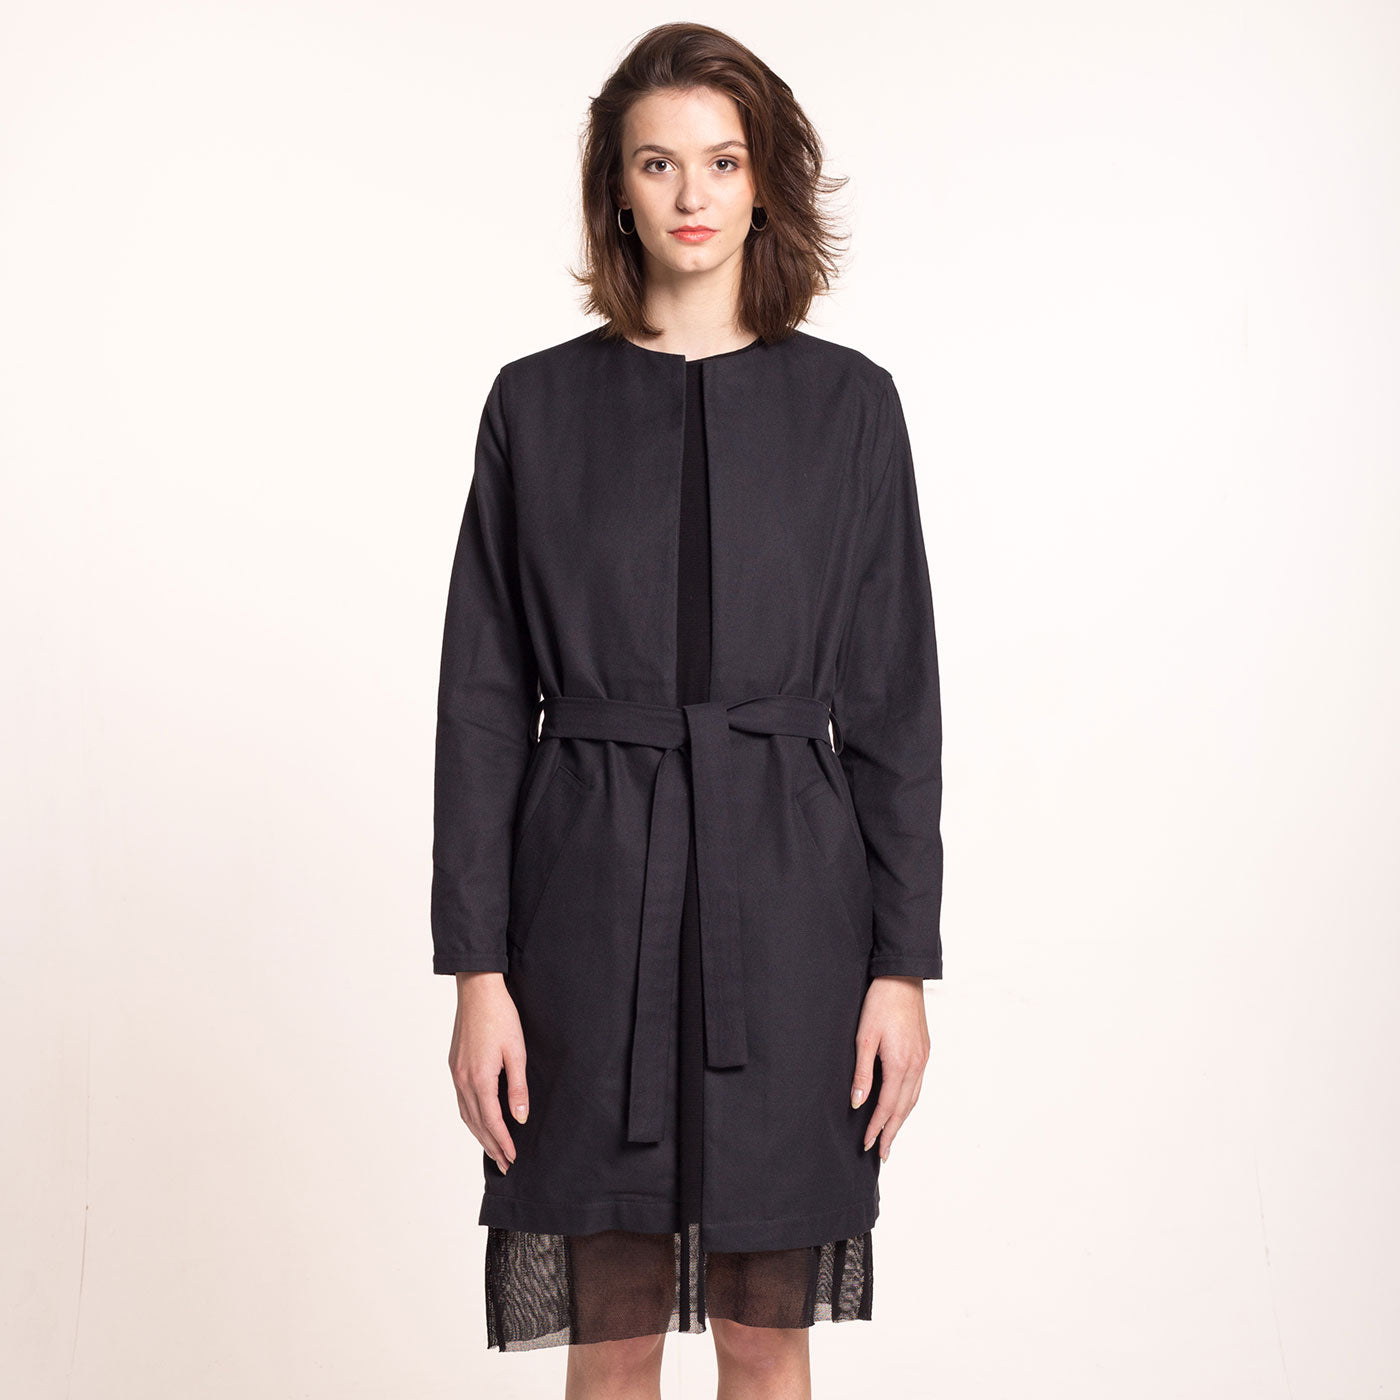 The model wears a black, sustainable cotton coat, with round neckline, straight fit and a belt, front view.